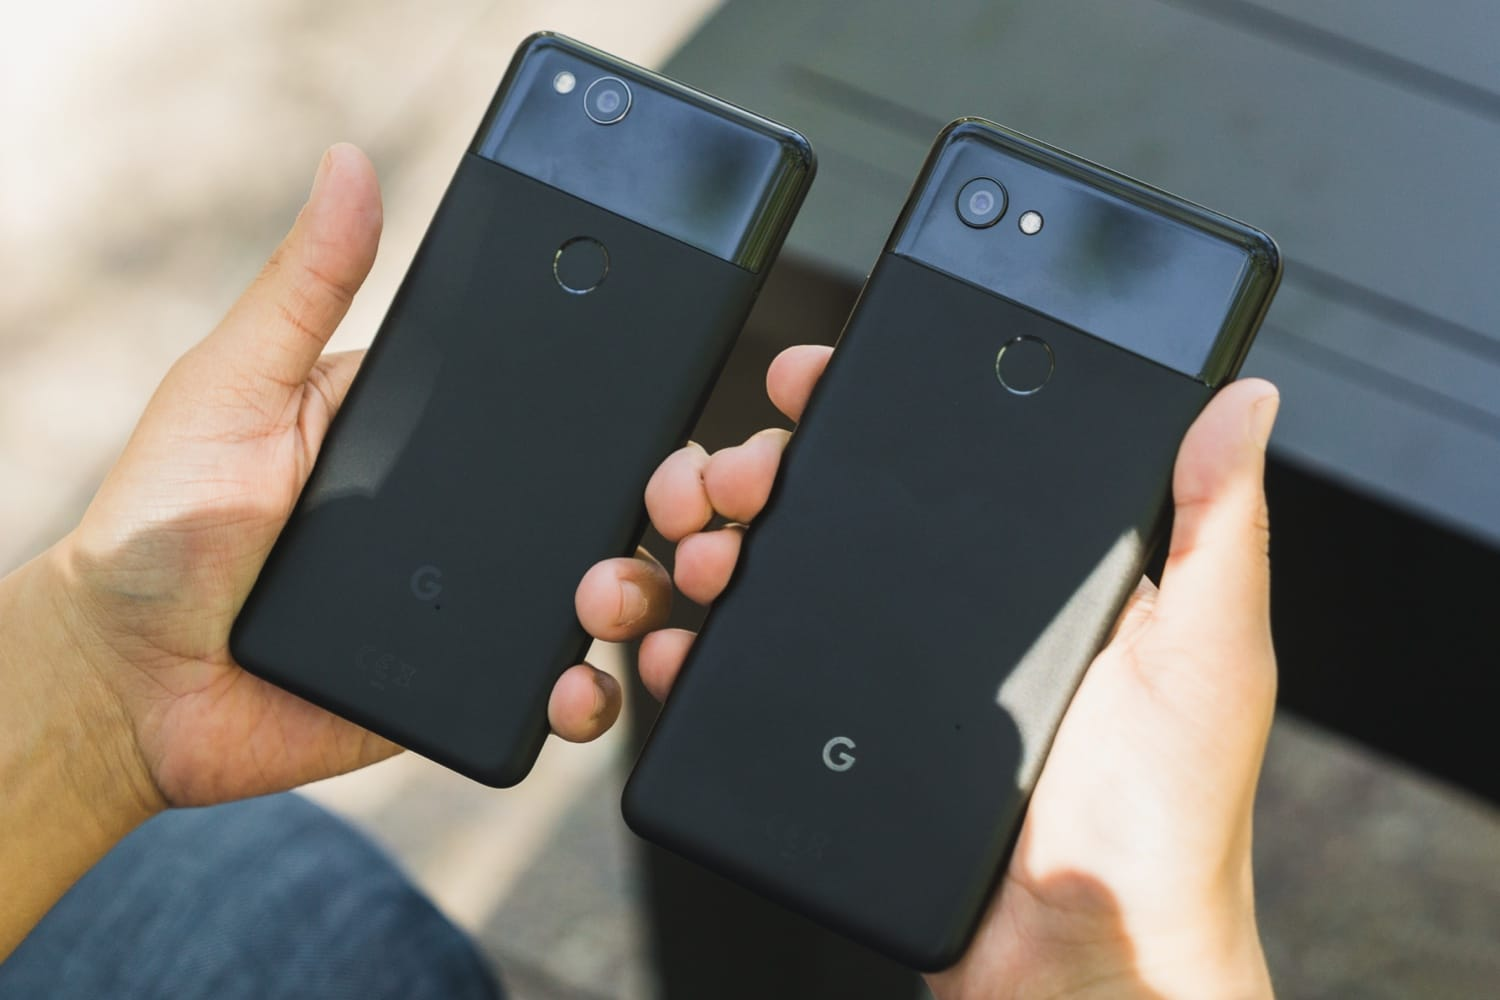 Google Pixel 3 Android smartphone Not announced yet Features 54 AMOLED display Snapdragon 845 chipset 122 MP primary camera Dual 8 MP front camera 128 GB